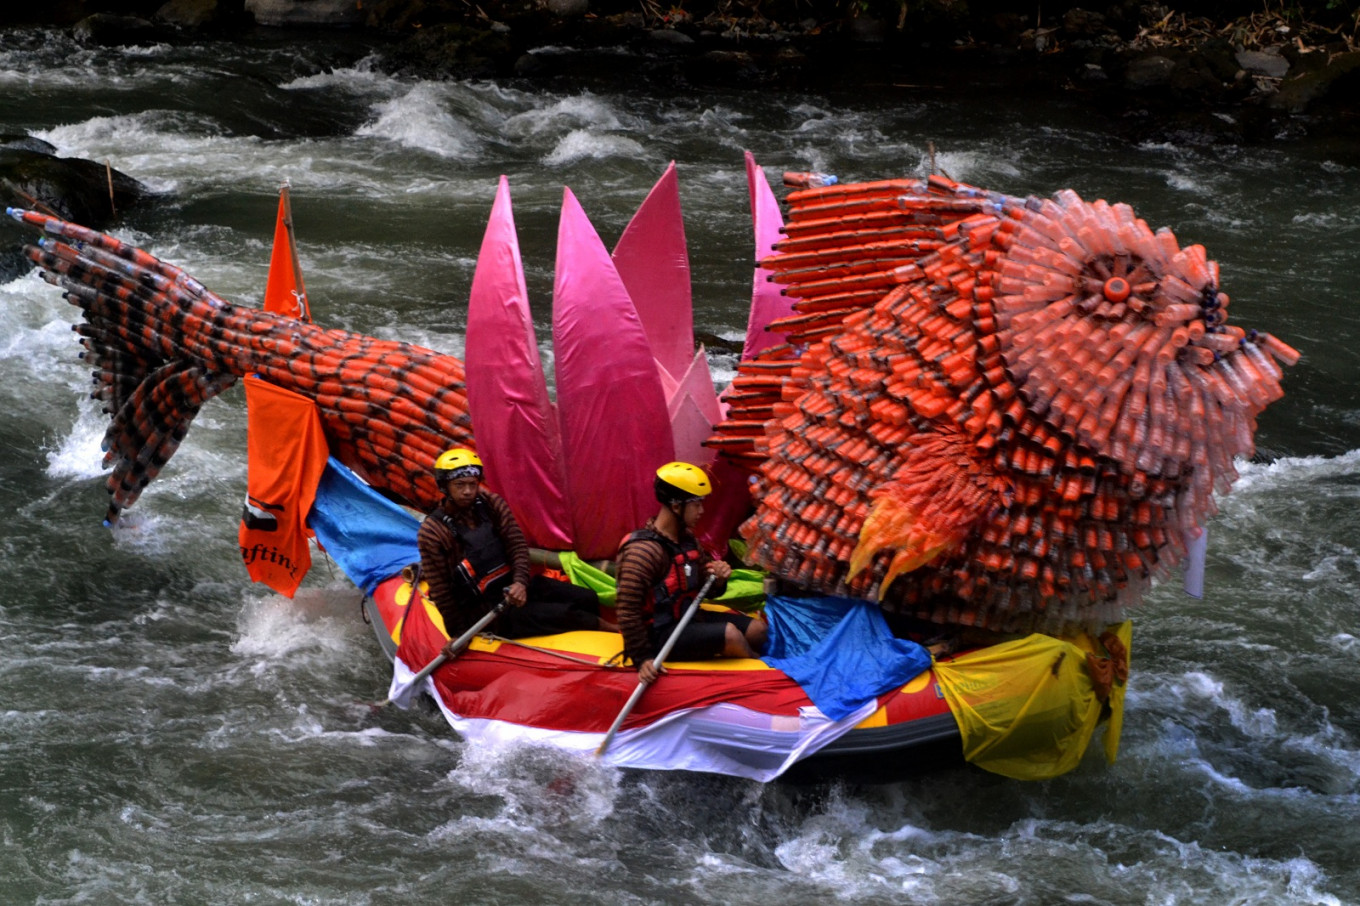 A very eye-catching ornamented boat riding the river currents during the parade.